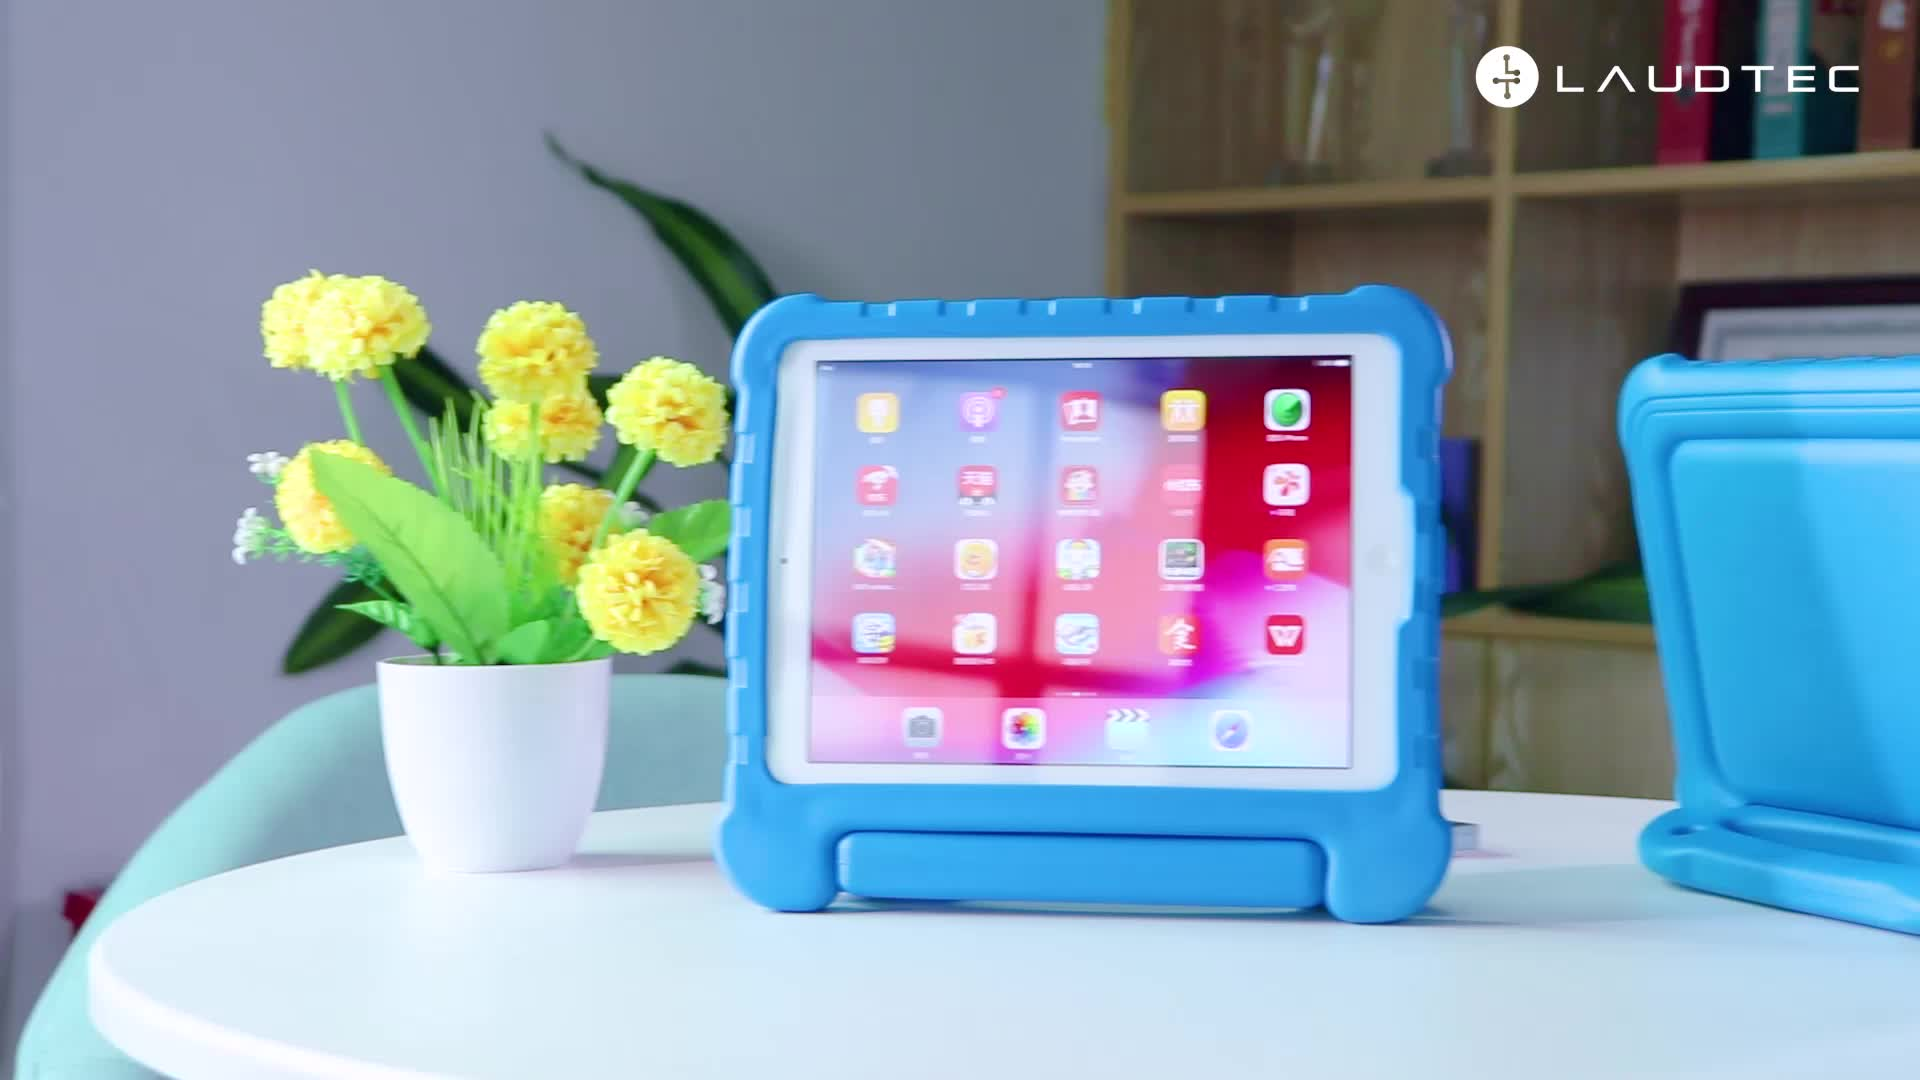 New Arrival Lightweight Shockproof Laptop Cover for iPad 9.7 inch